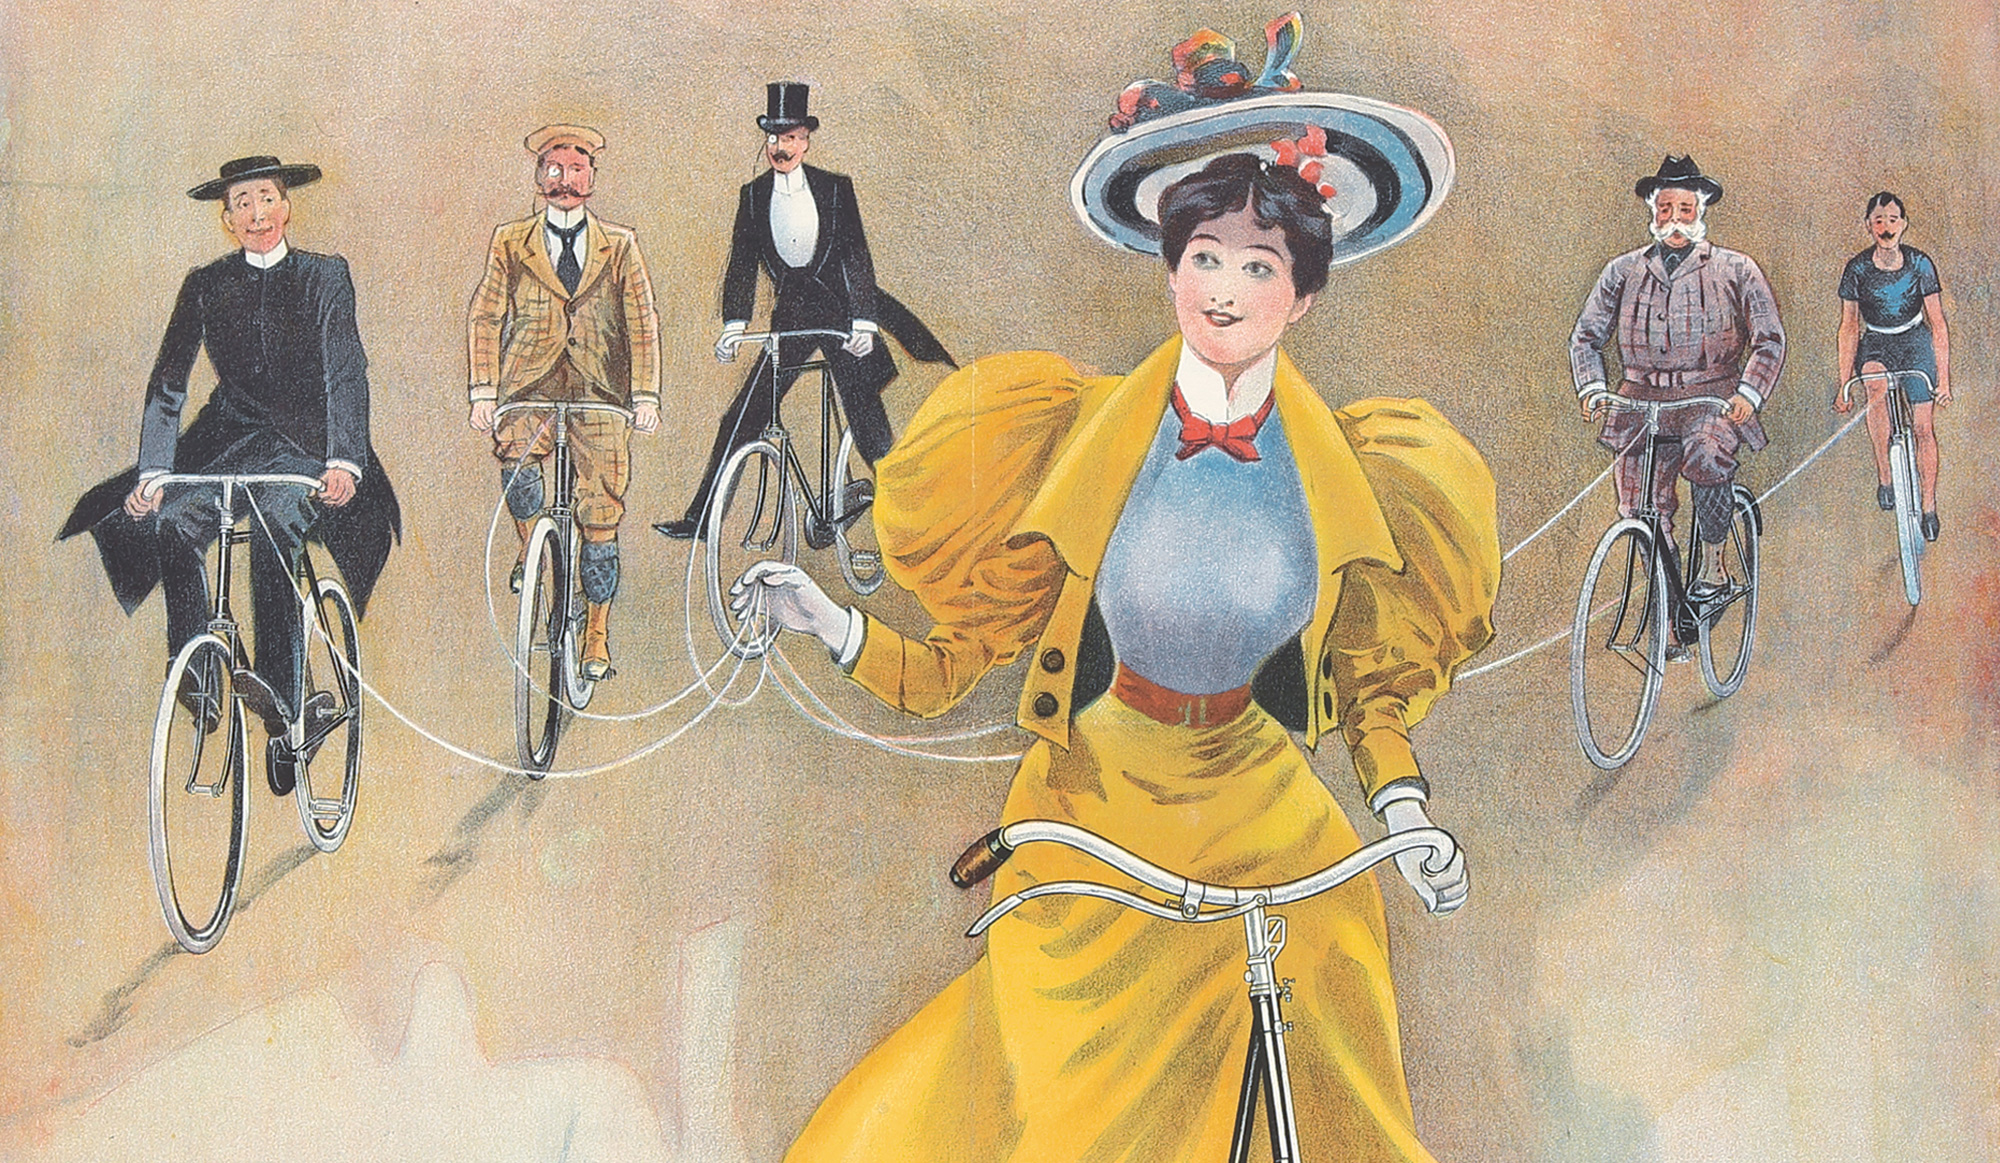 From Iconoclasts To Goddesses: How Bicycle Posters Prompted Women's Liberation